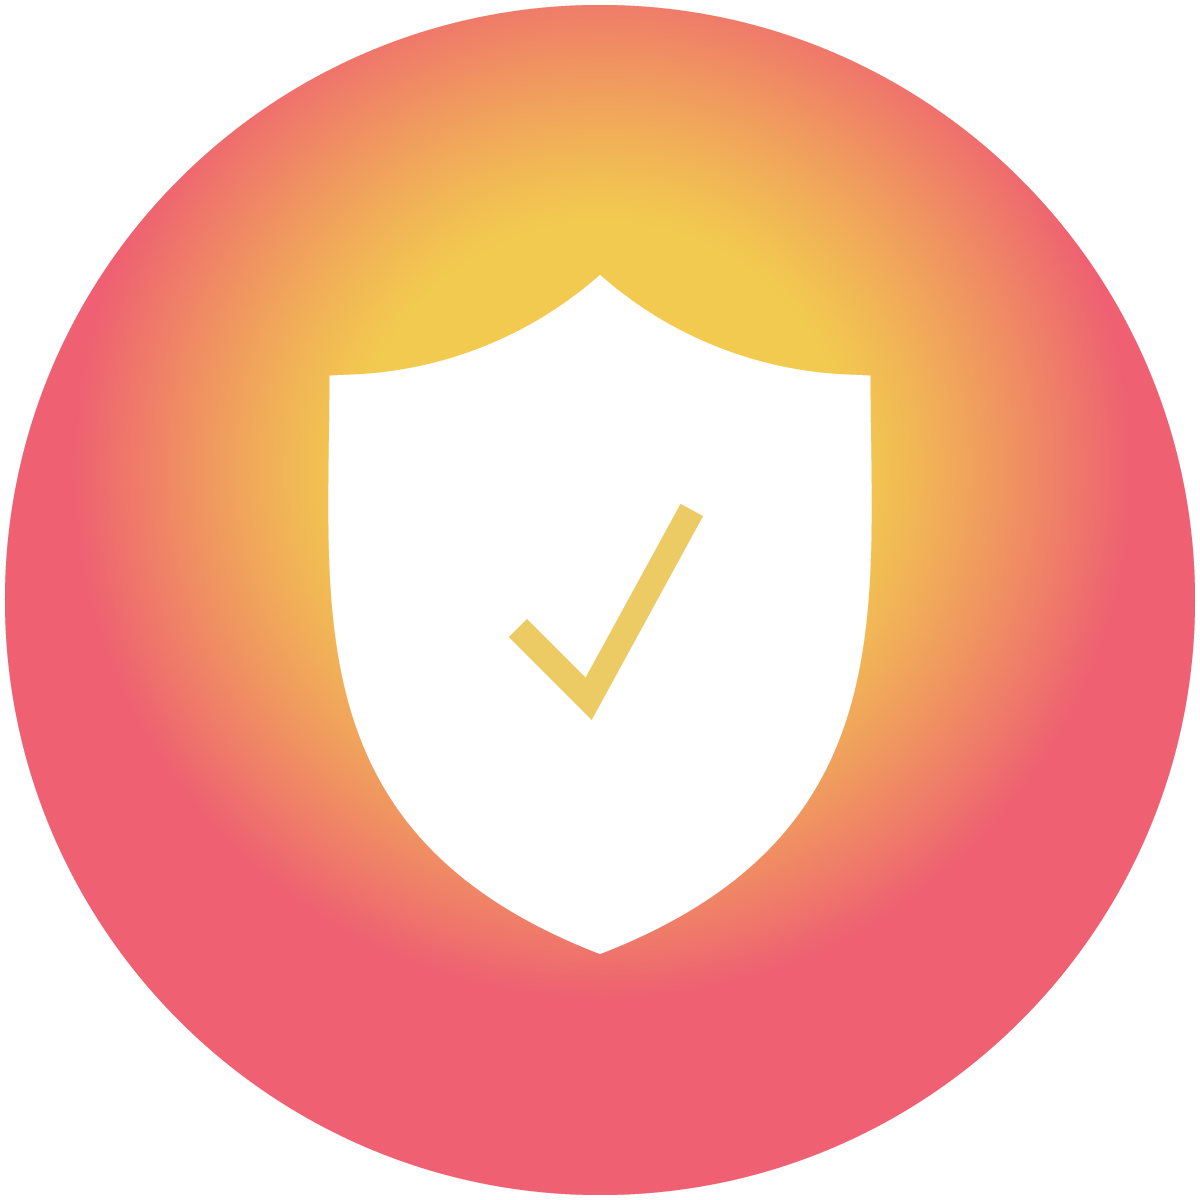 A check mark symbol on top of a shield, on top of a warm orange circle, signify that the chatbot offers trustworthy information.